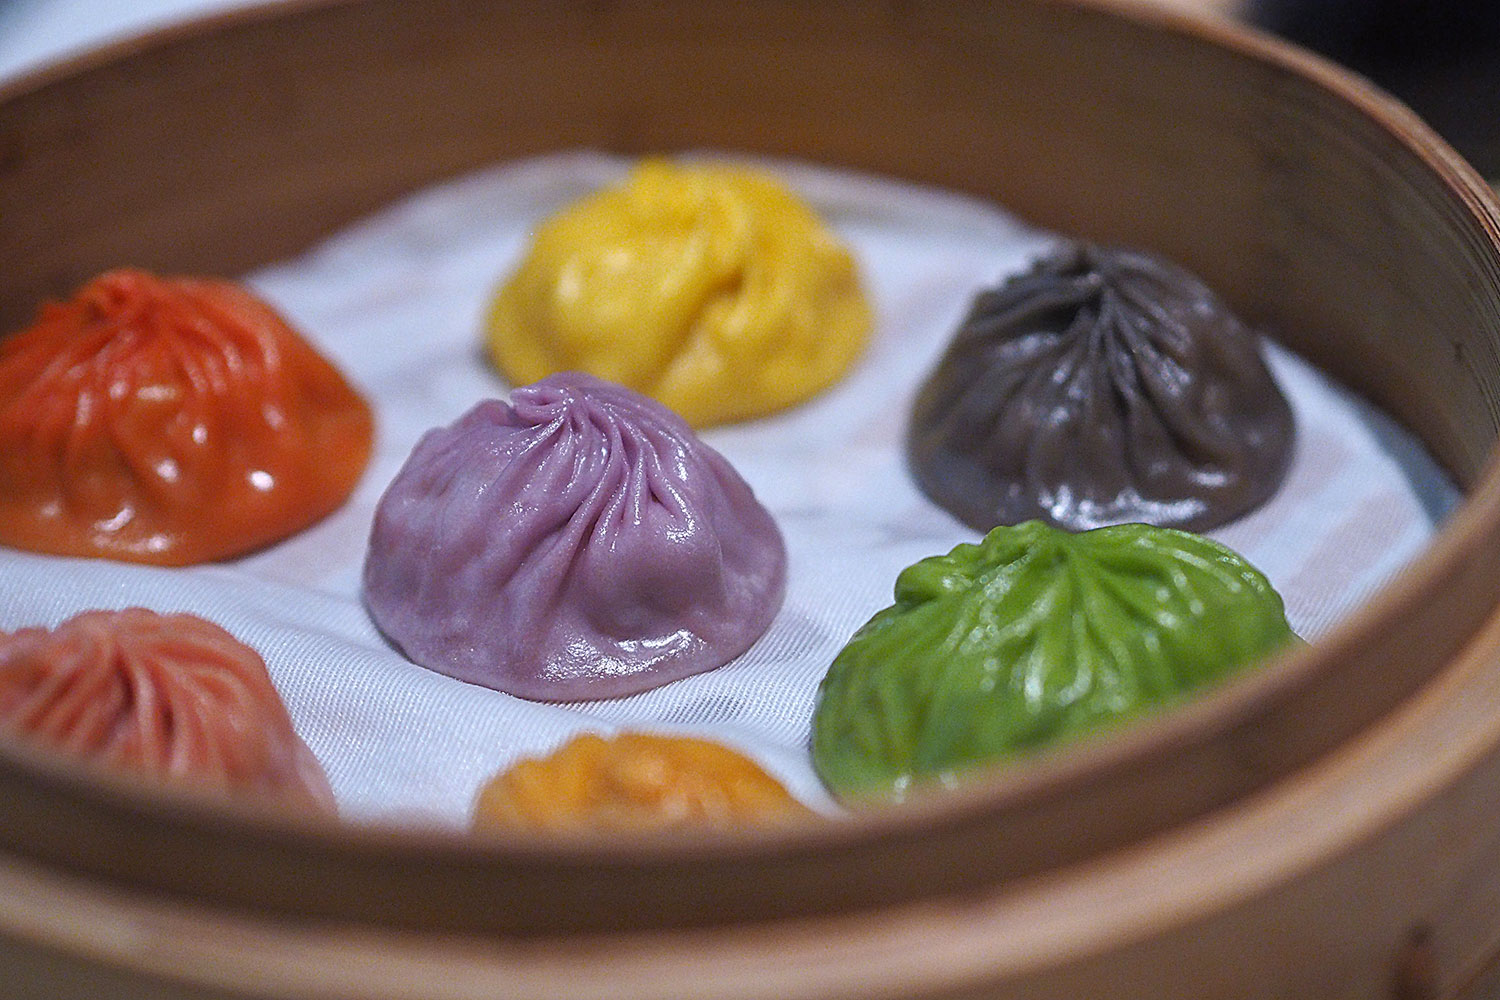 Rainbow Dumplings, Din Tai Fung, Chatswood: Sydney Food Blog Review